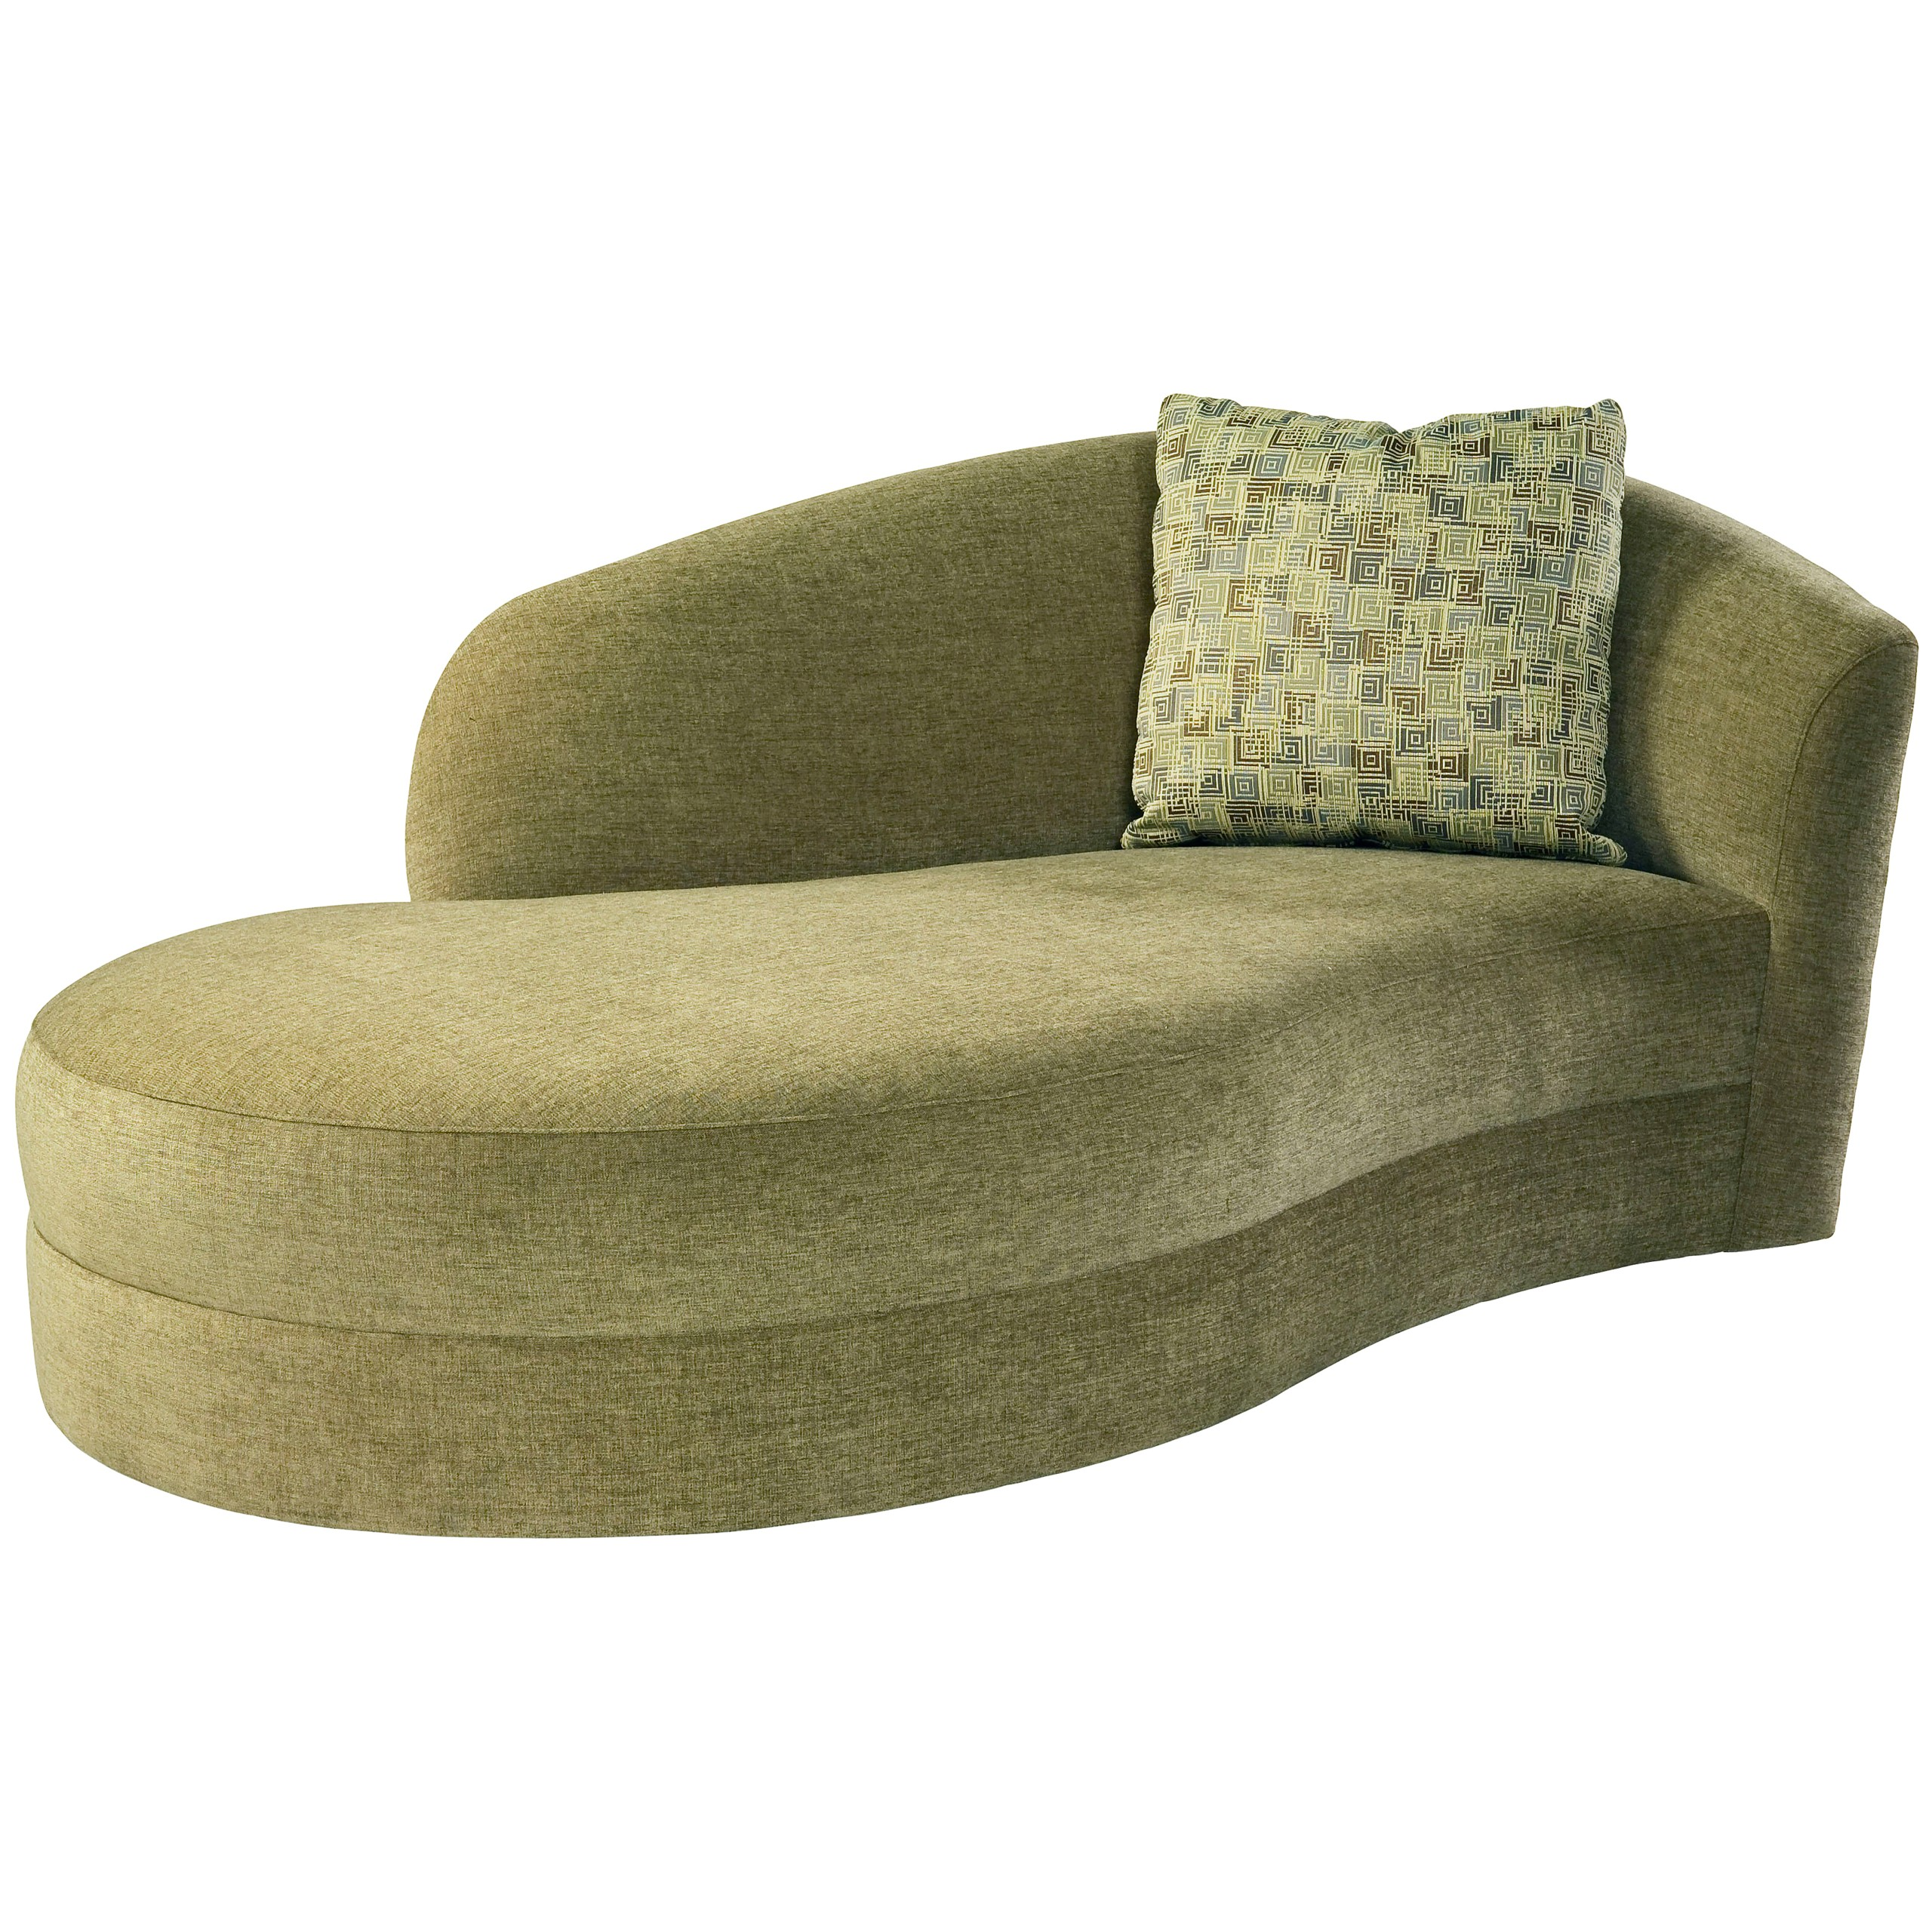 Reclining Chaise Lounge Chair Indoor